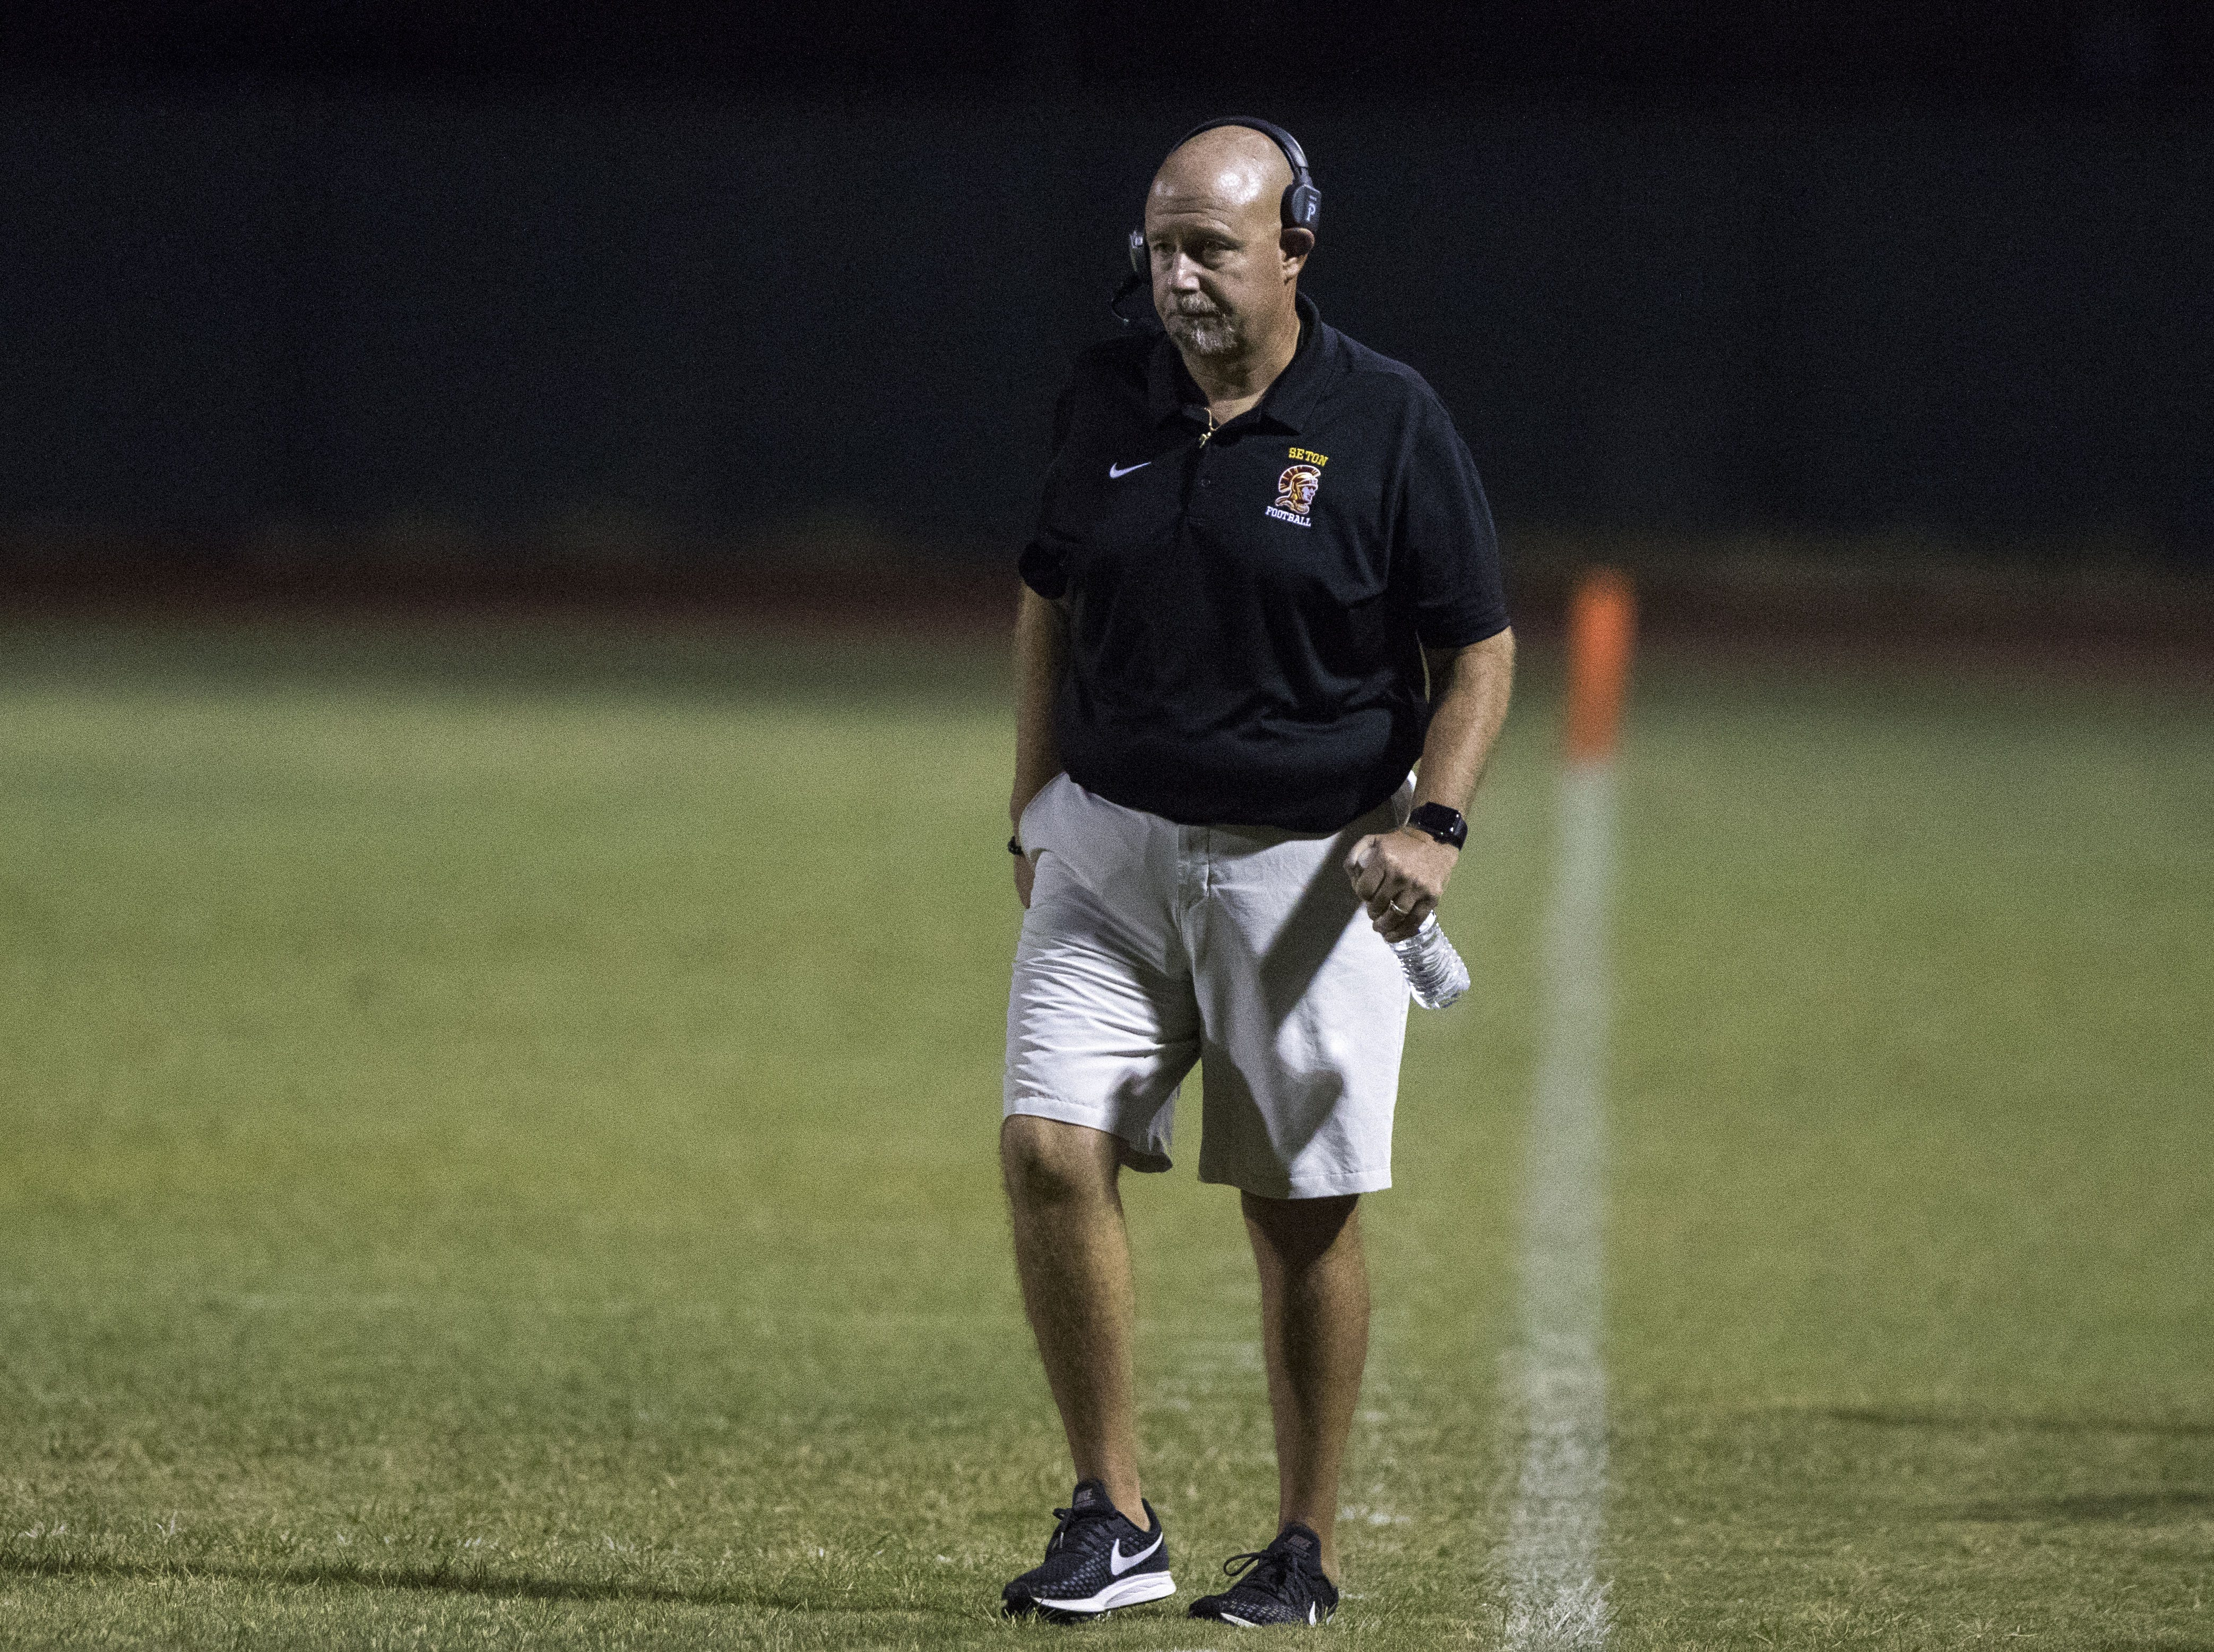 Seton coach Mike Chiurco walks the sideline during their game against Mesquite in Gilbert Friday, Sept. 21, 2018. #azhsfb